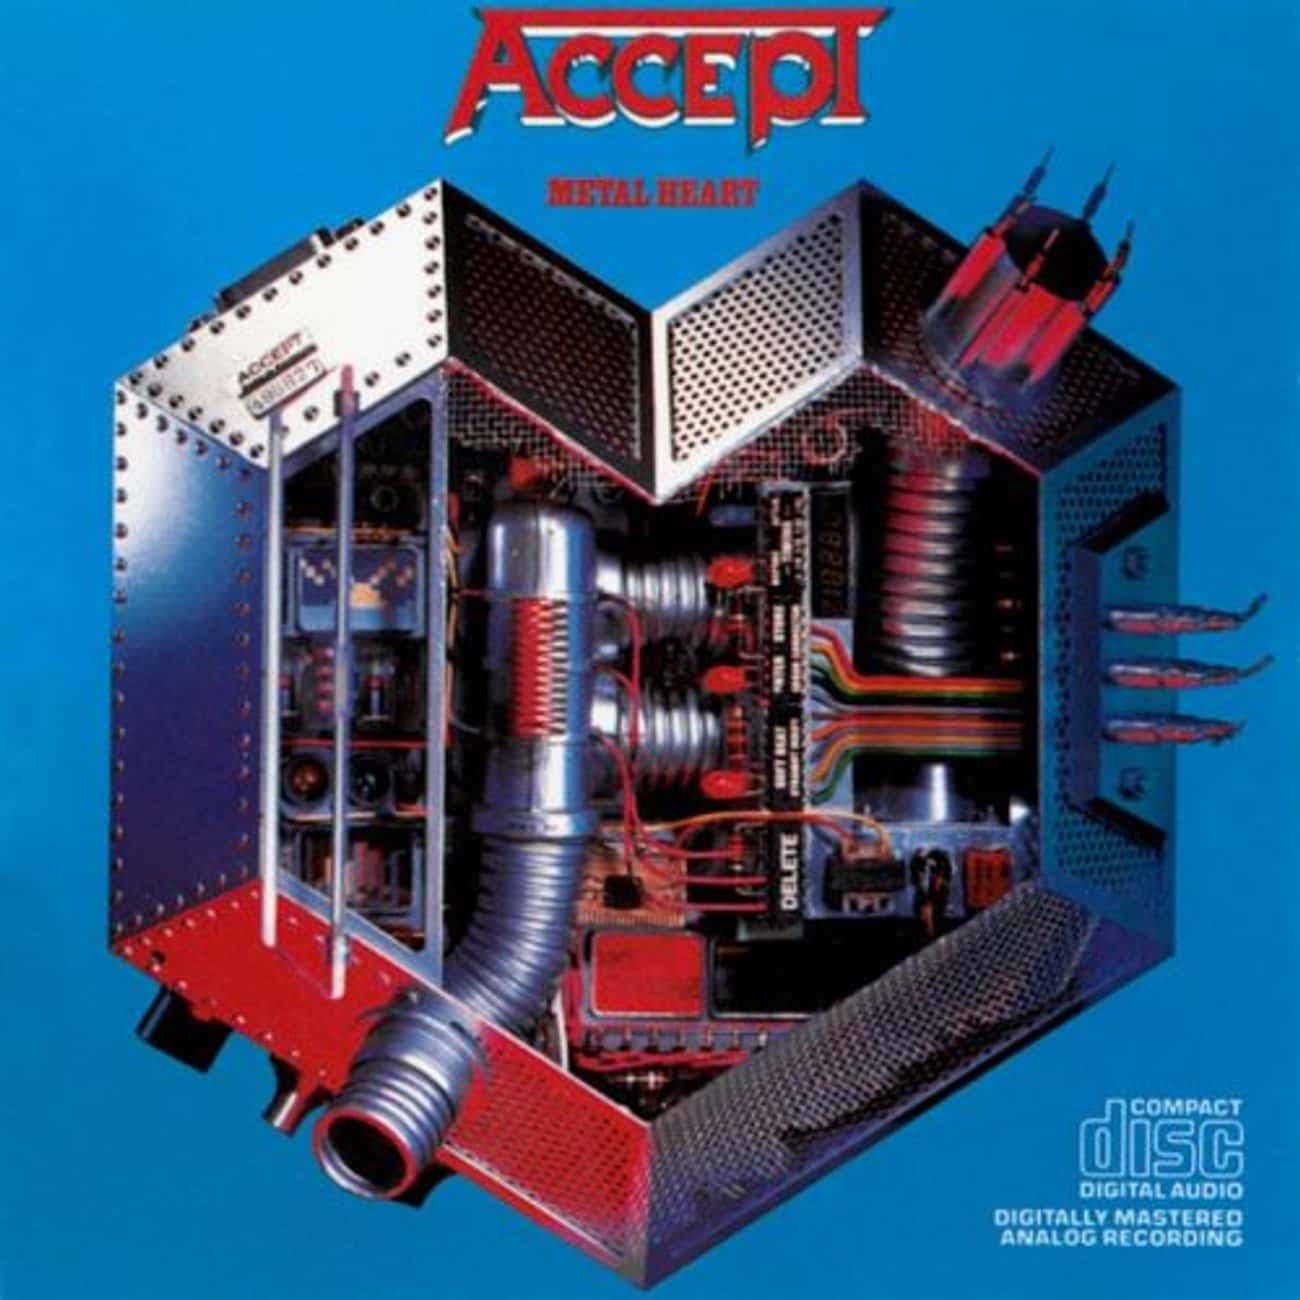 Metal Heart is listed (or ranked) 3 on the list The Best Accept Albums of All Time